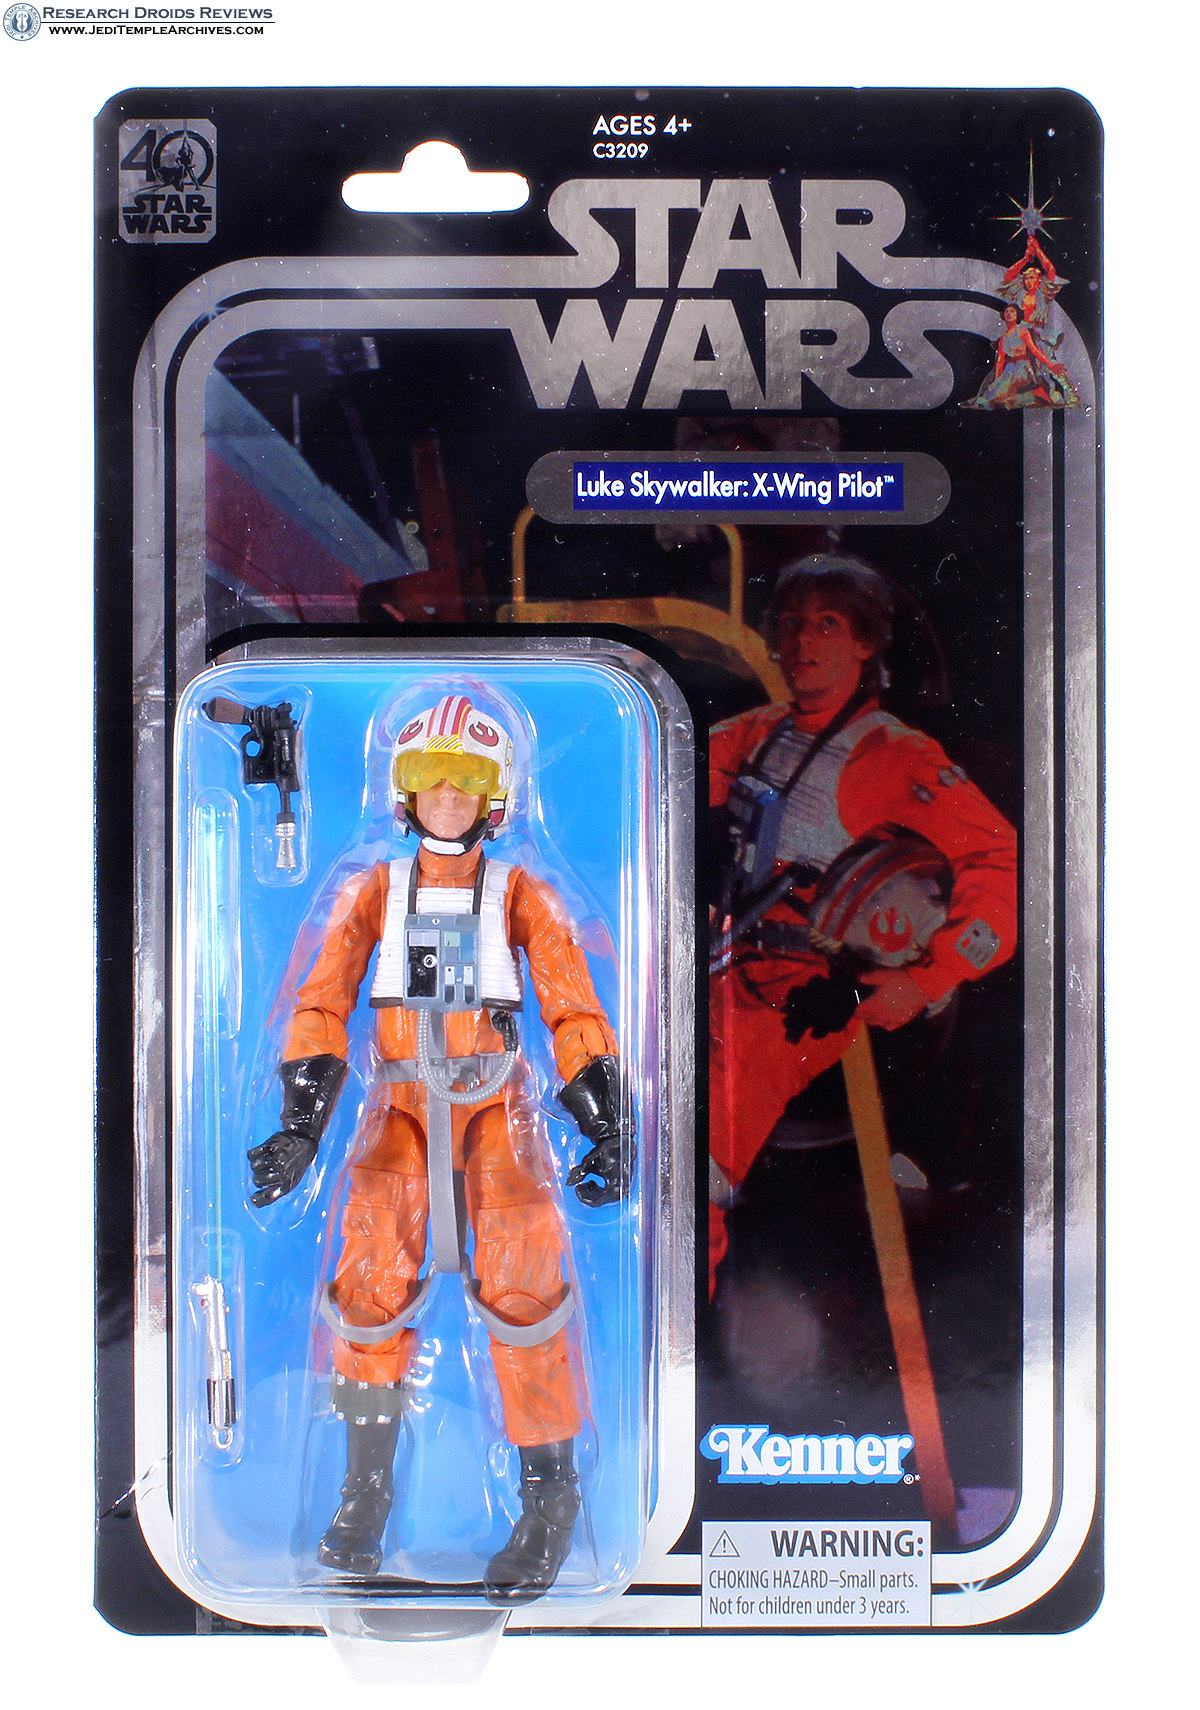 Luke Skywalker (X-Wing Pilot) -